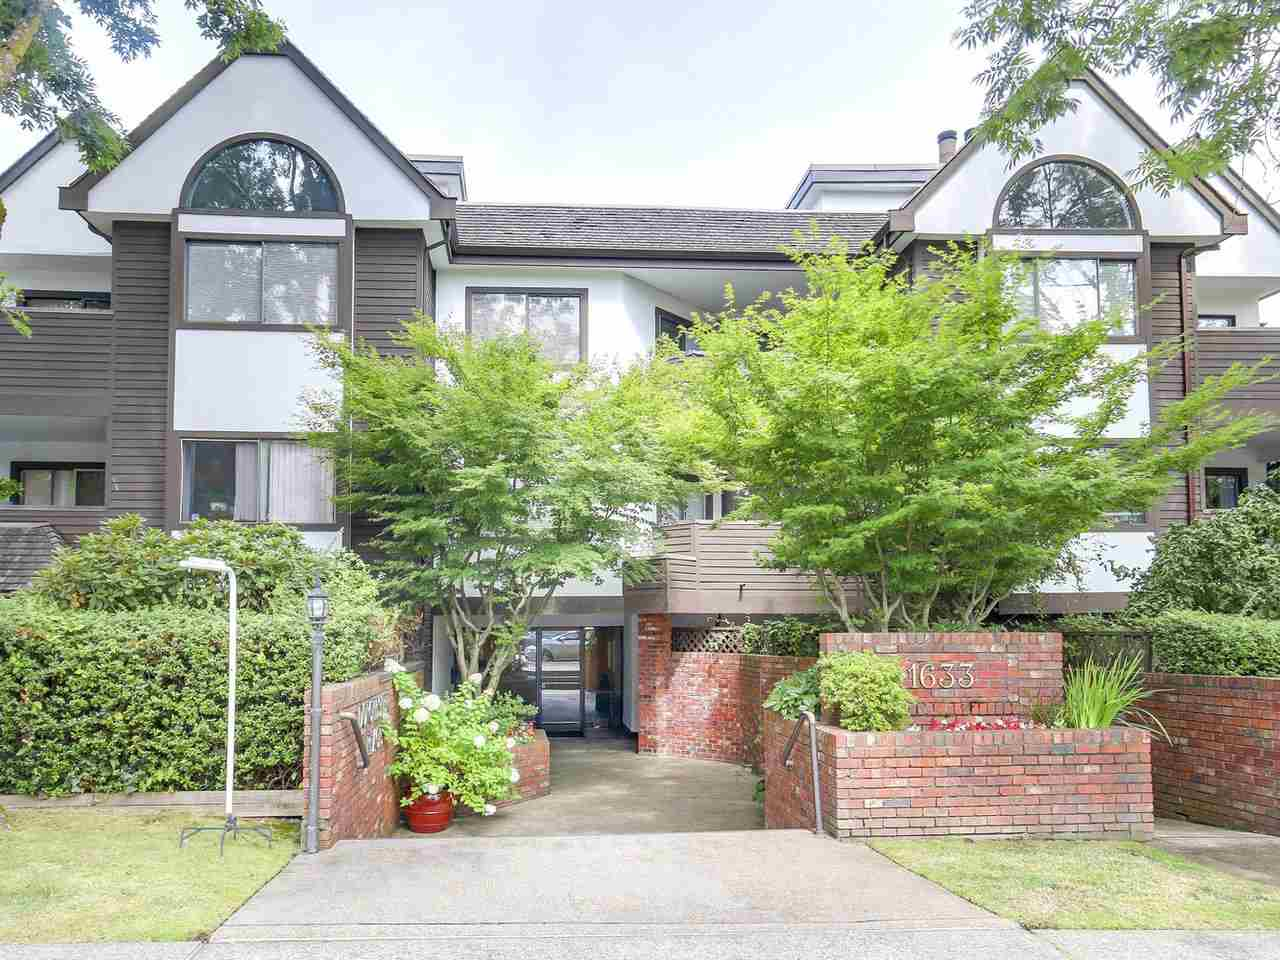 Main Photo: 206 1633 W 11TH AVENUE in Vancouver: Fairview VW Condo for sale (Vancouver West)  : MLS® # R2197304